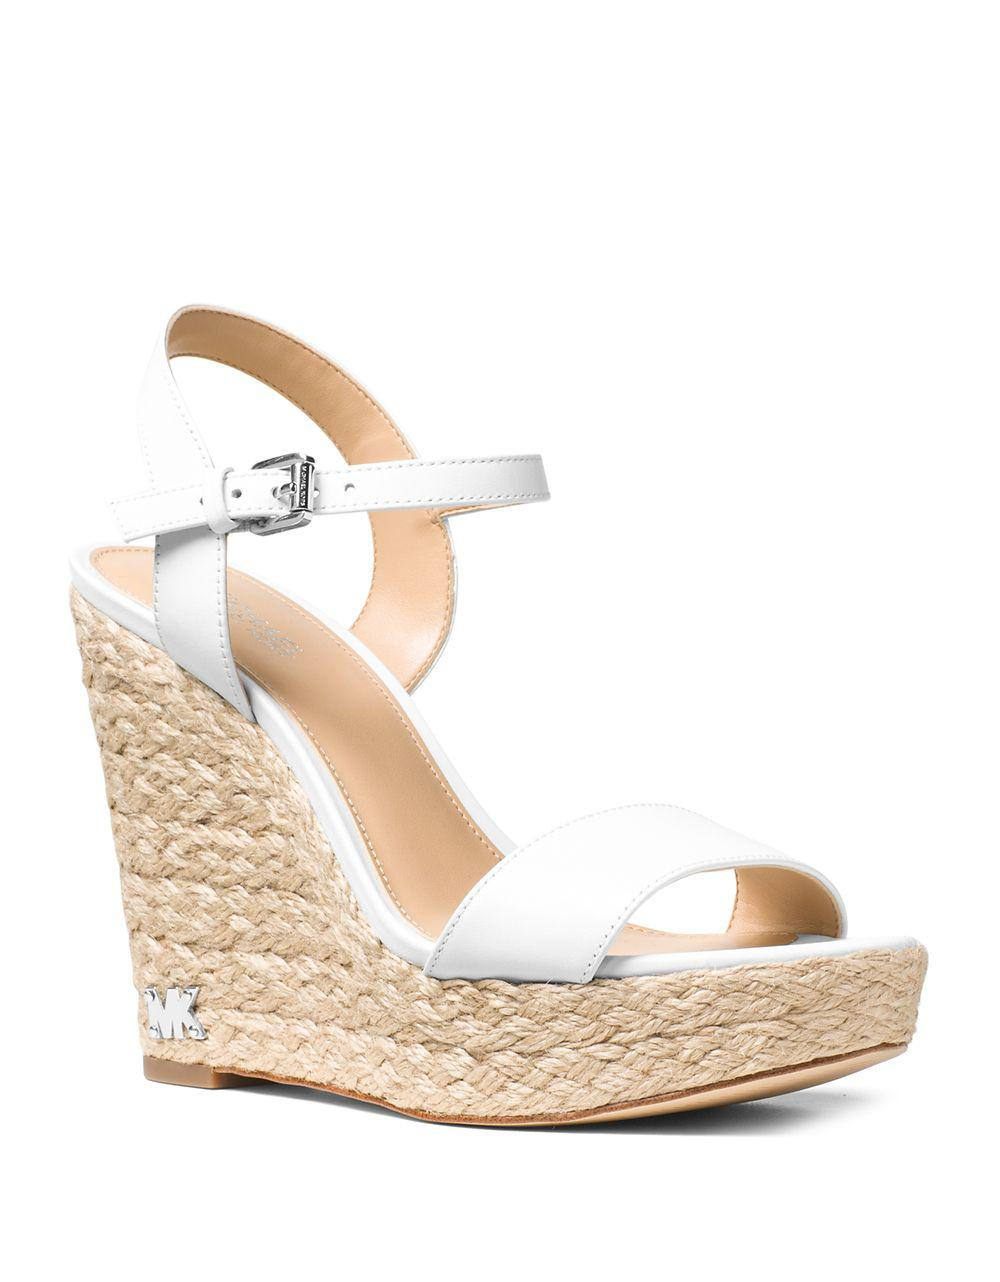 cdd13700be9 Lyst - Michael Michael Kors Jill Espadrille Wedge Leather Sandals in ...